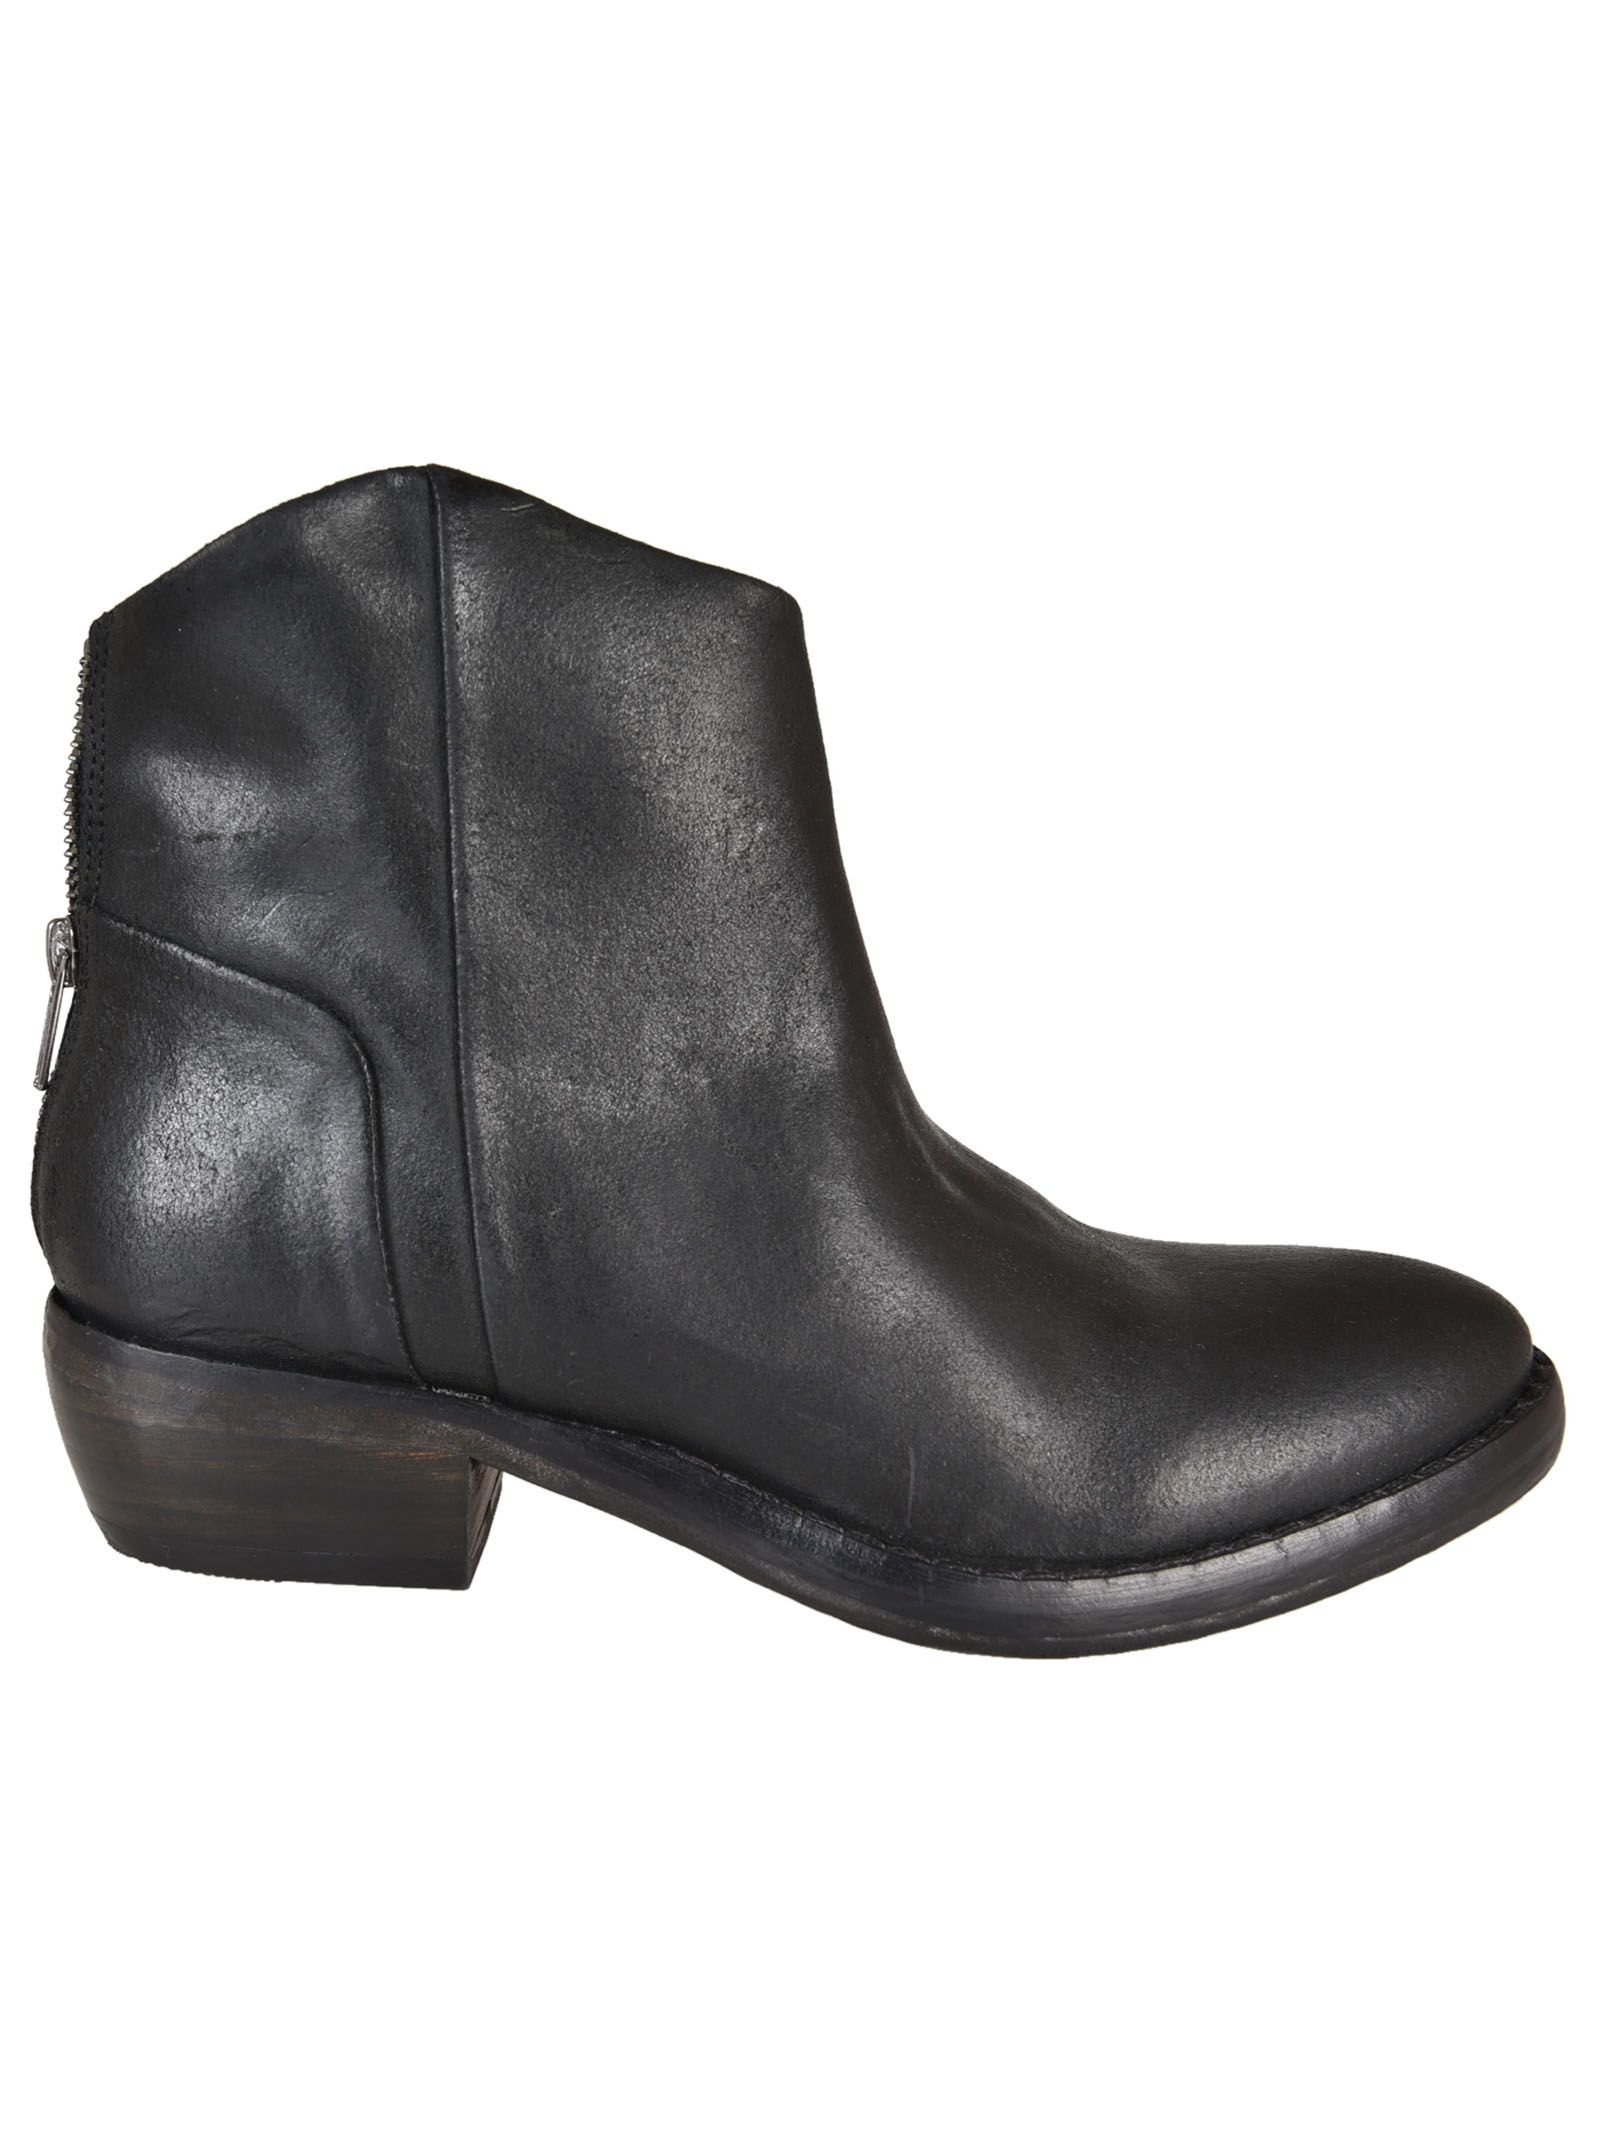 Catarina Martins Roger Mold Zip Ankle Boots ...